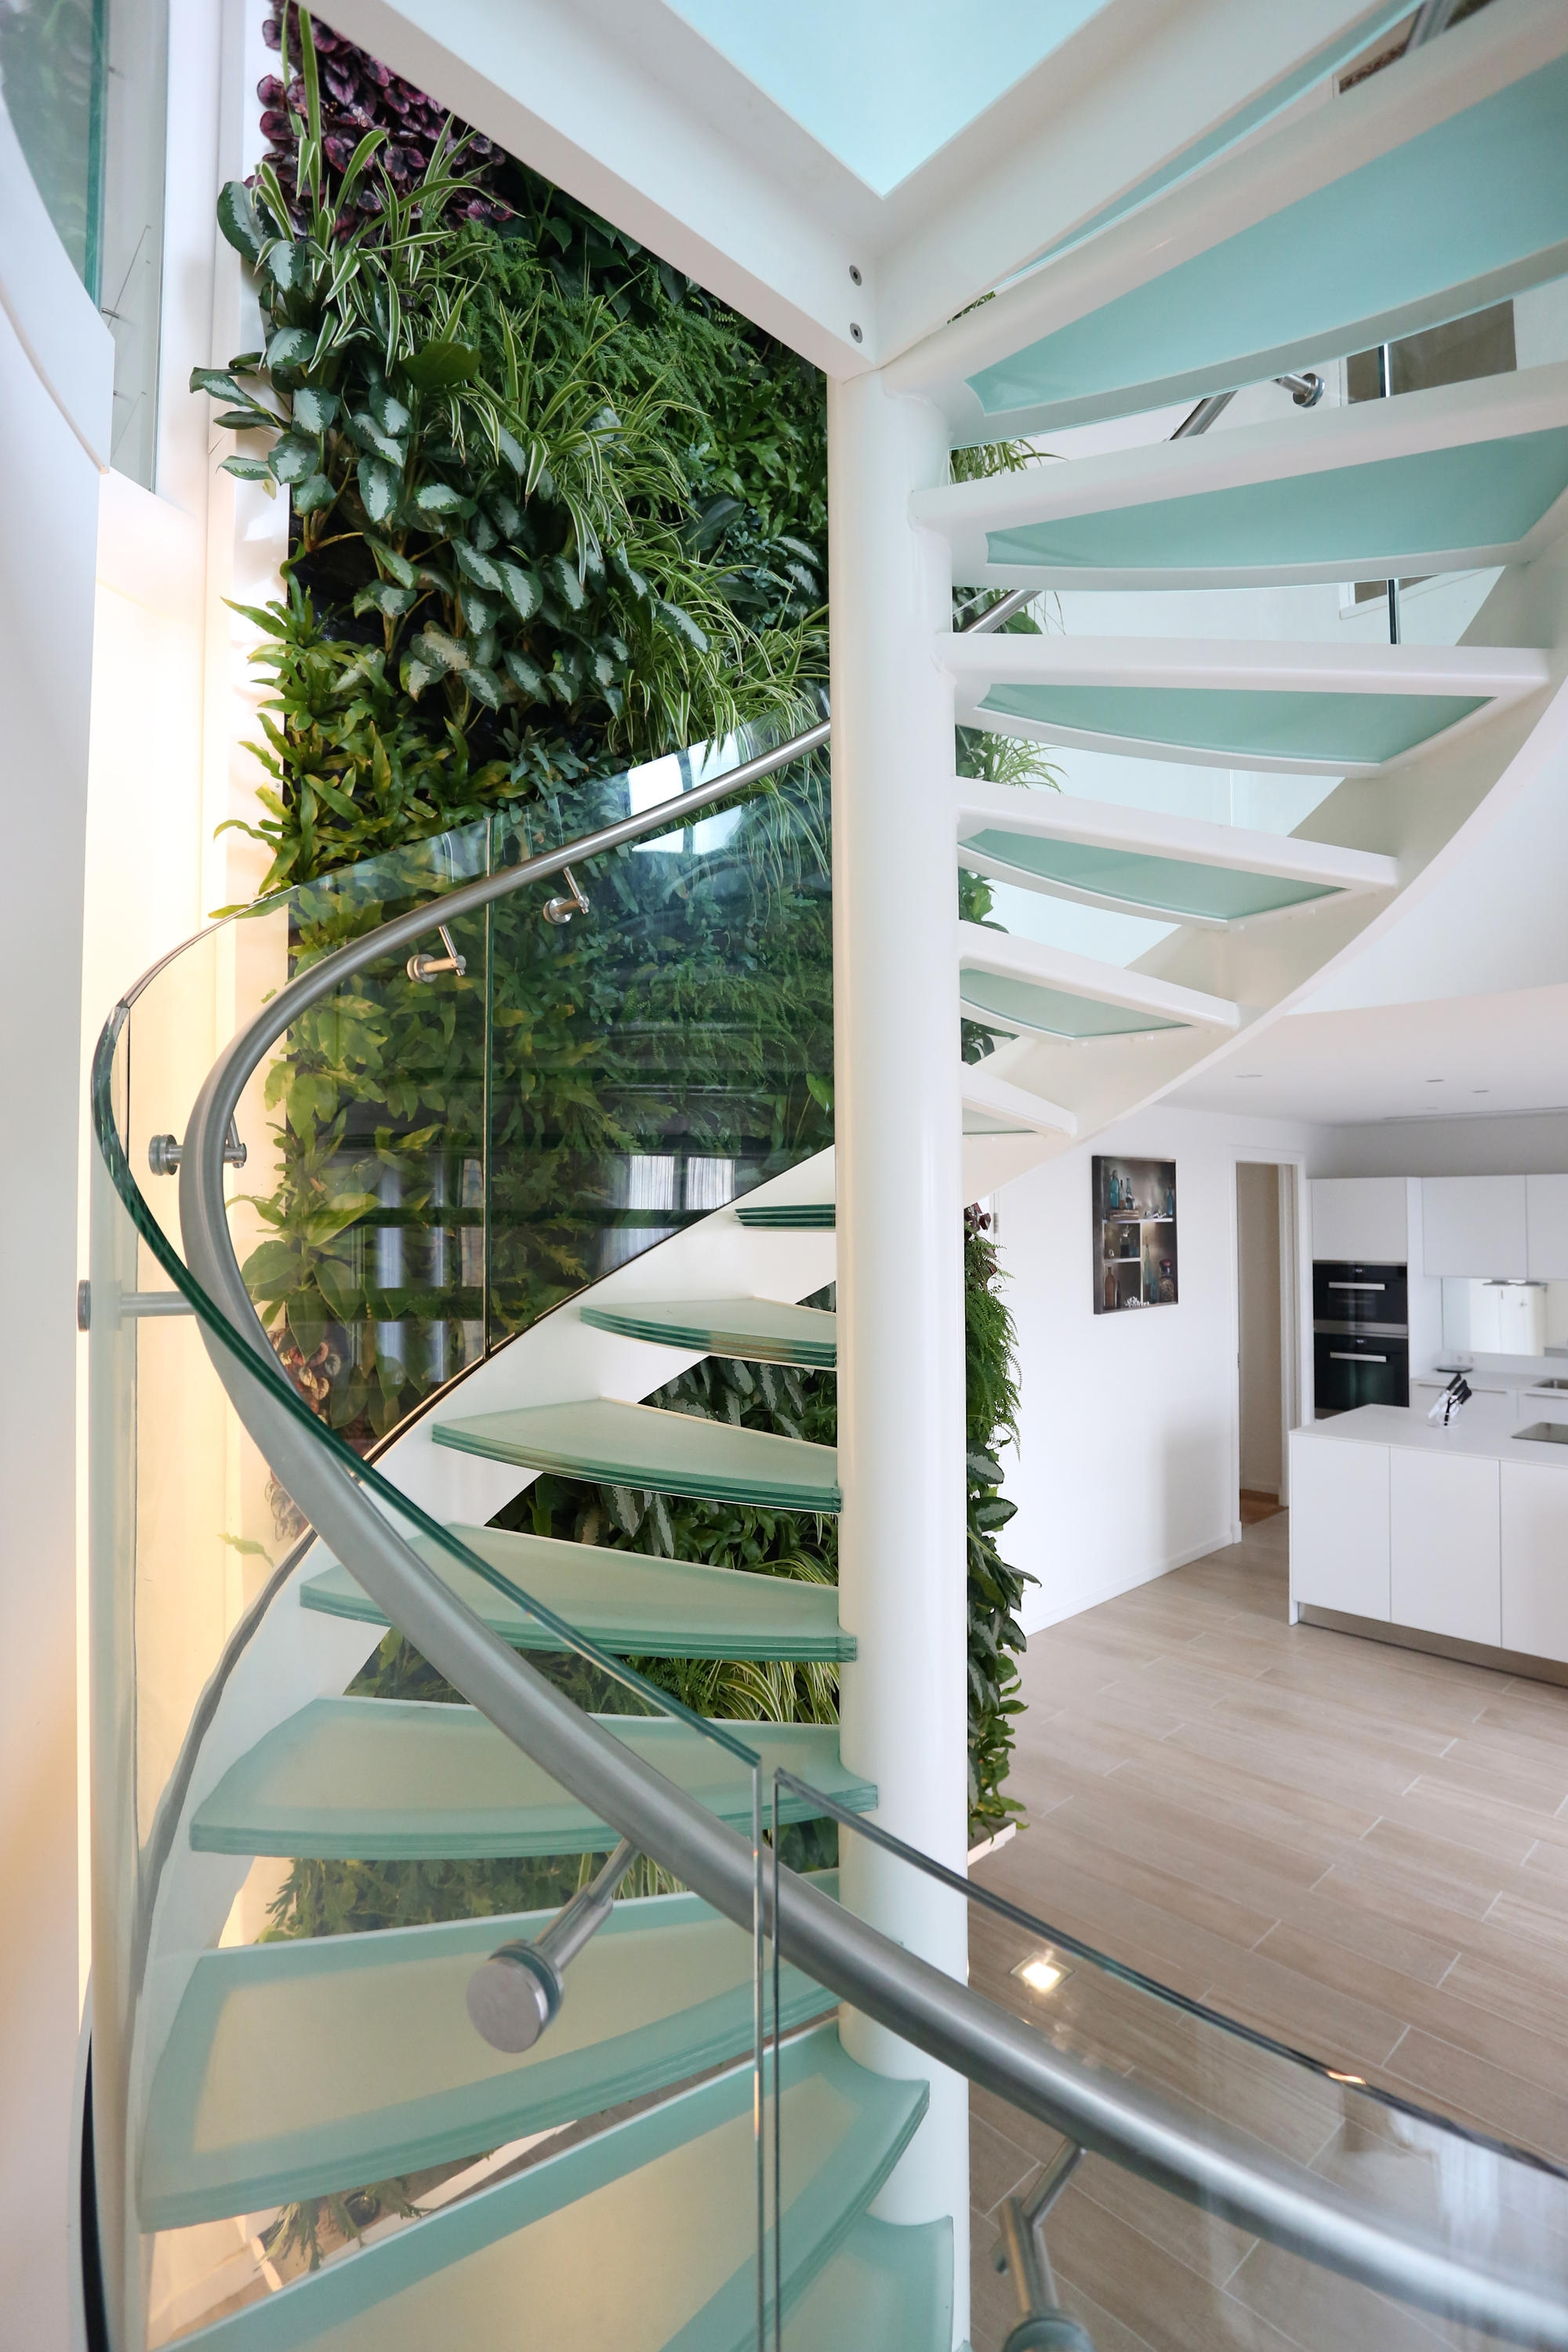 Spiral Stairs Glass Tse 636 Architonic | Spiral Staircase With Glass Railing | Exterior | In India Staircase | Stair Wood Bracket | Glass Insert | Inside Glass